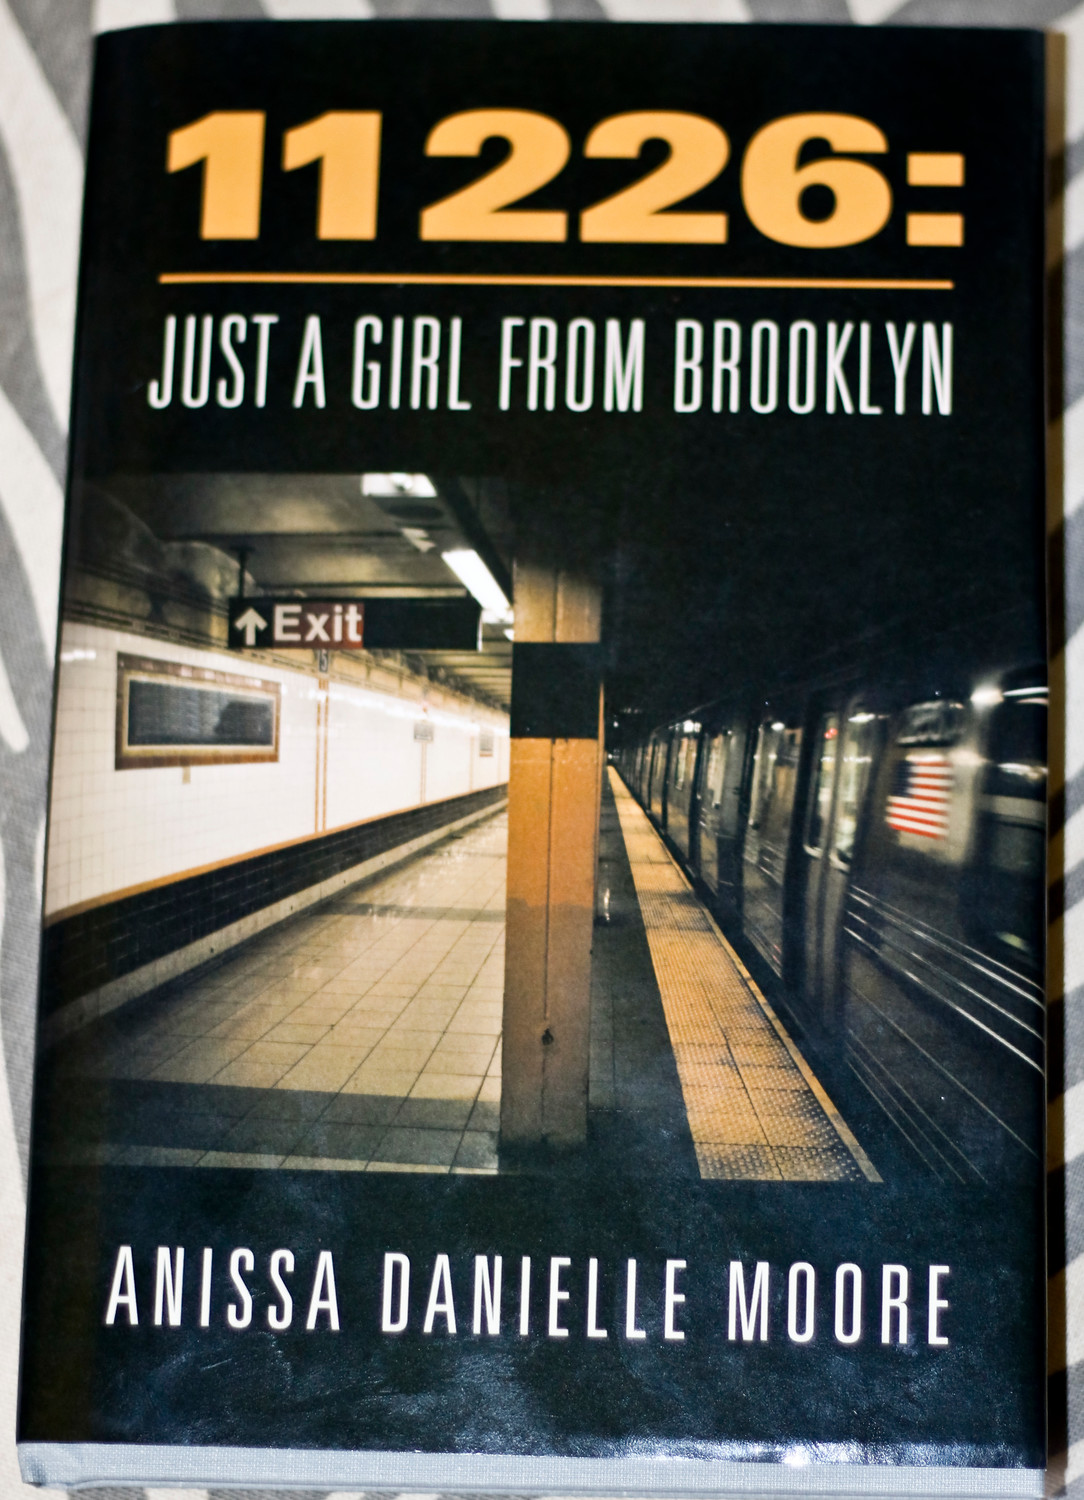 After writing for about 10 years — usually while riding the New York City subway — Moore decided to collect her poems and compile them into a book.